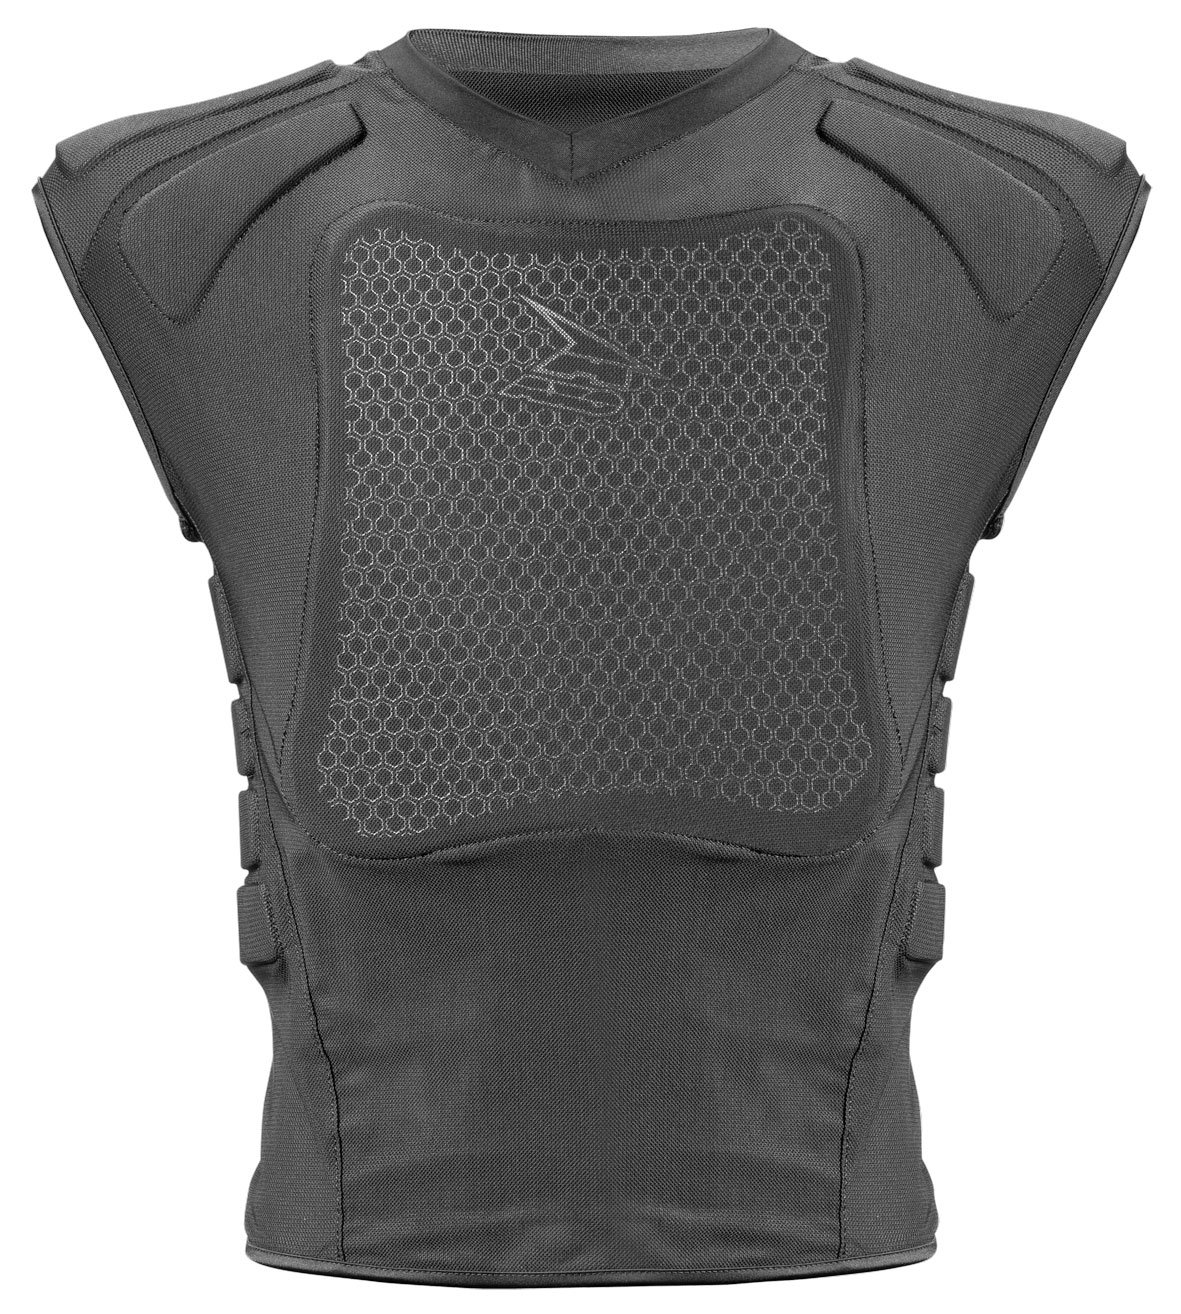 AXO MX7A0050-K00 Rhino Vest Ce, Black, Size XS/S AXO International